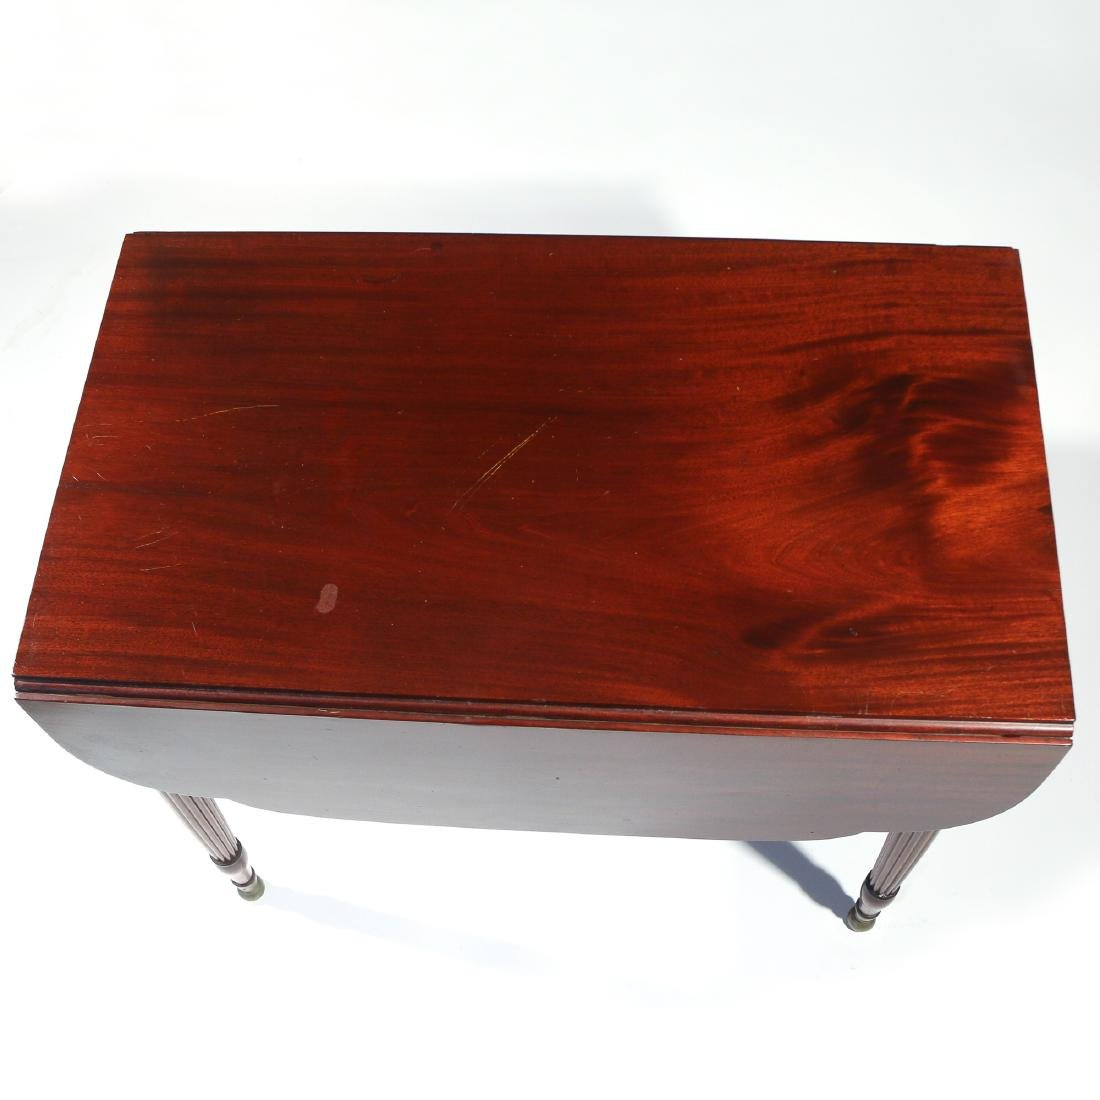 LATE FEDERAL CARVED MAHOGANY PEMBROKE TABLE - 3